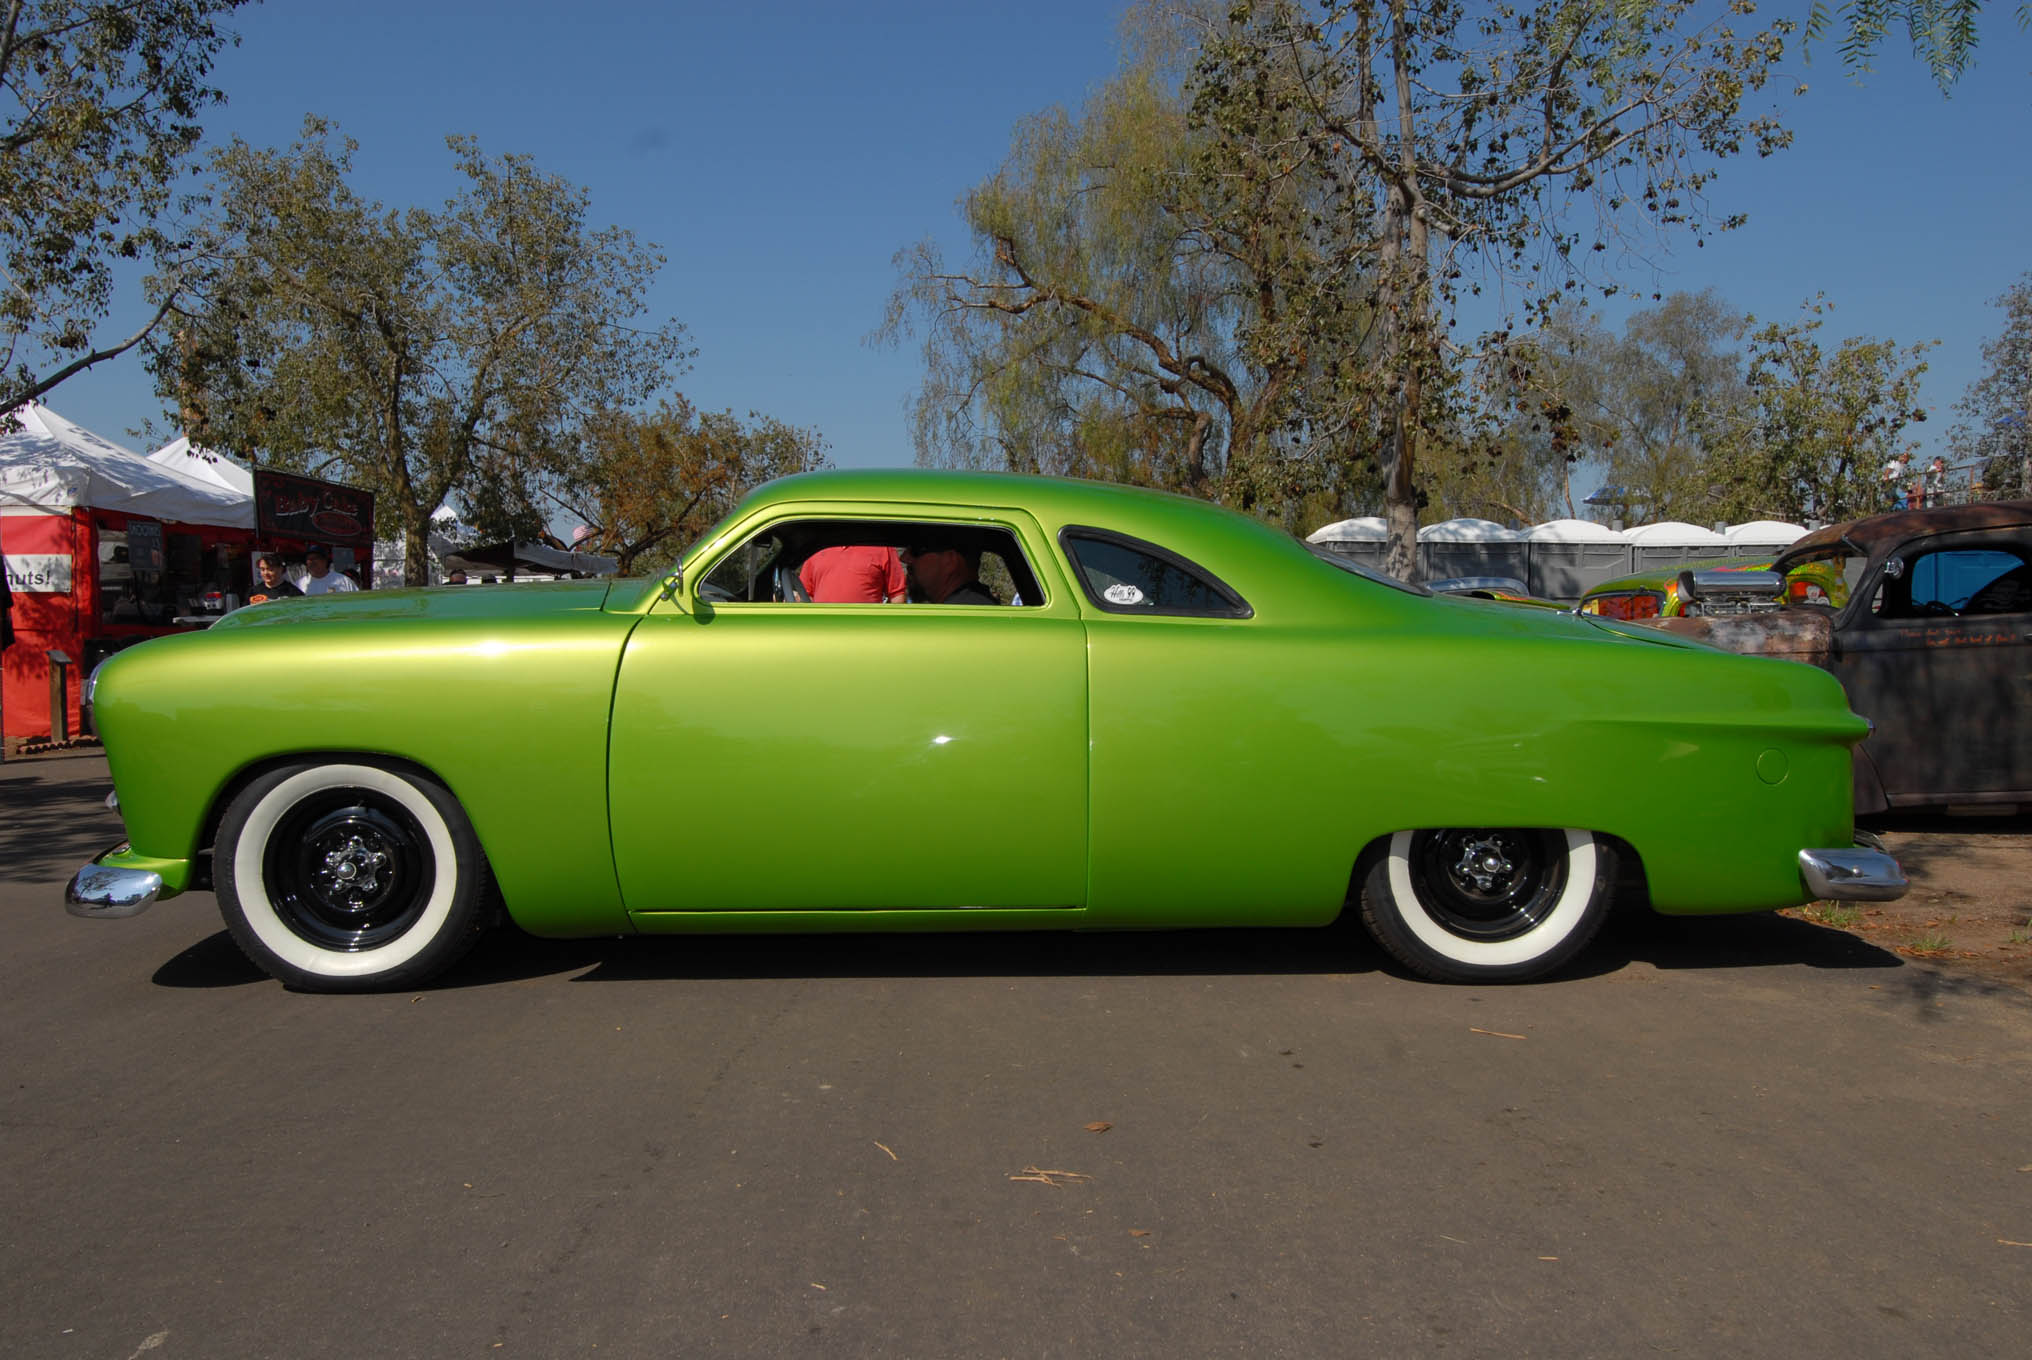 If your dad ran a Hudson at Bonneville and named you Race on the birth certificate, chances are you grew up to be a gearhead. Race Slayton, now 42, acquired this '49 business coupe in painted pieces from builder John Salazar, who lost interest after the death of his 23-year-old son and helper. Laying down the stock rear window helped blend John's 6-inch-chop job into the body. Race raced to the rescue and put the whole puzzle together, adding a small-block Chevy and Turbo 350.